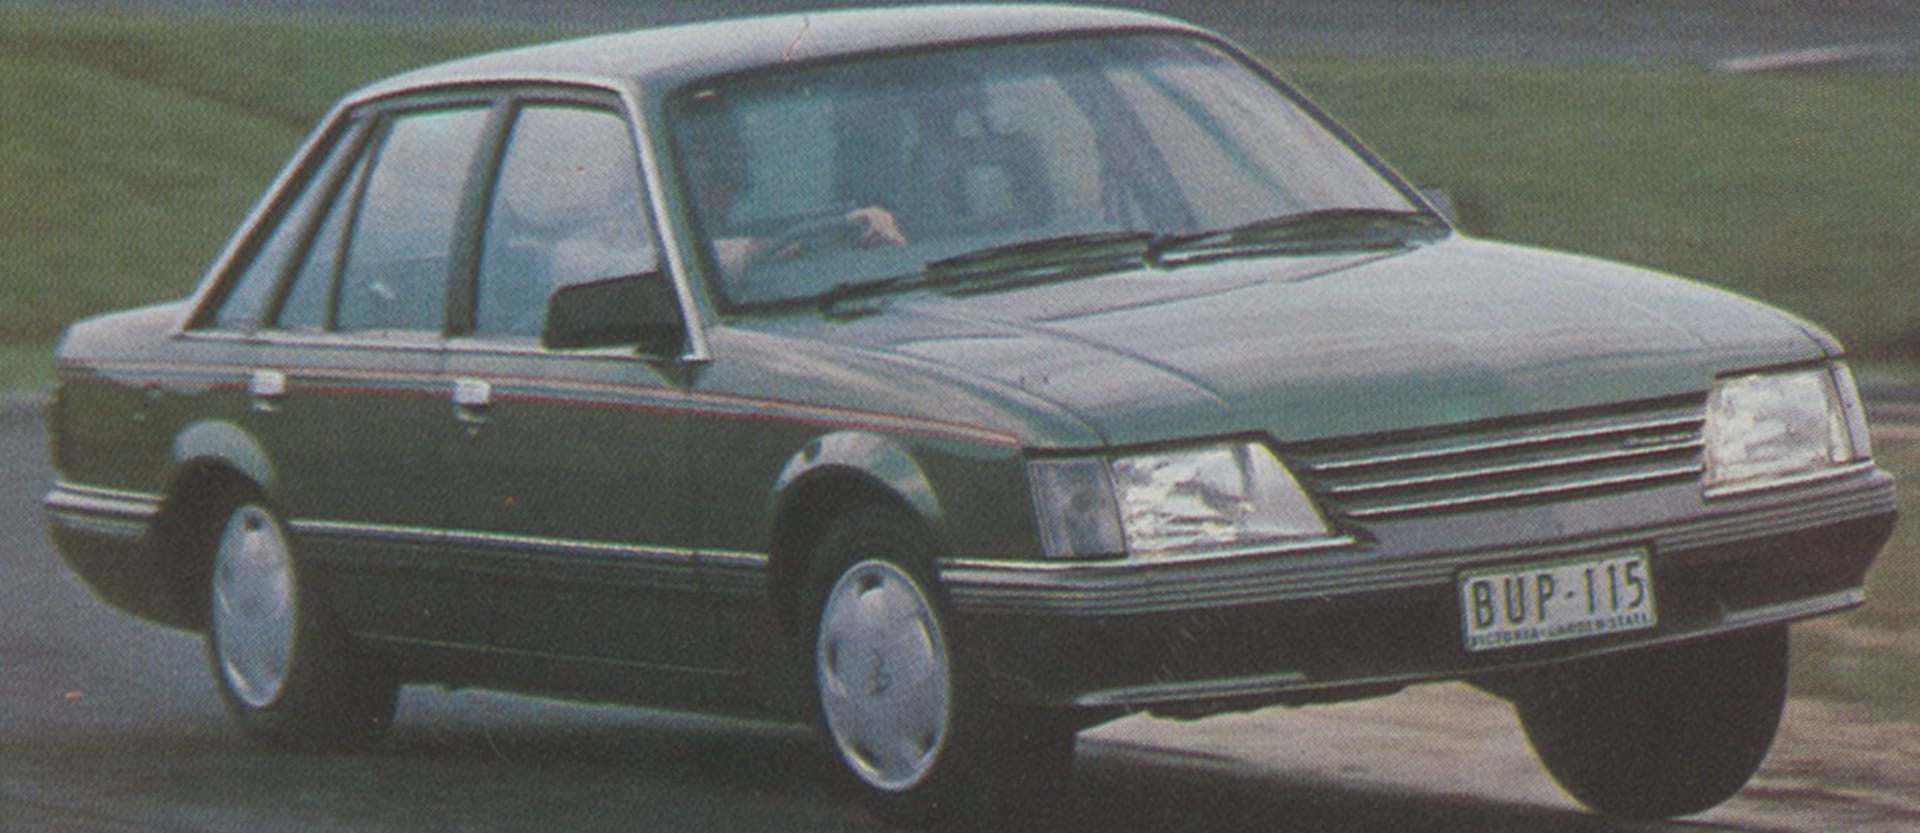 1984 Holden Commodore Injecting life into the Commodore